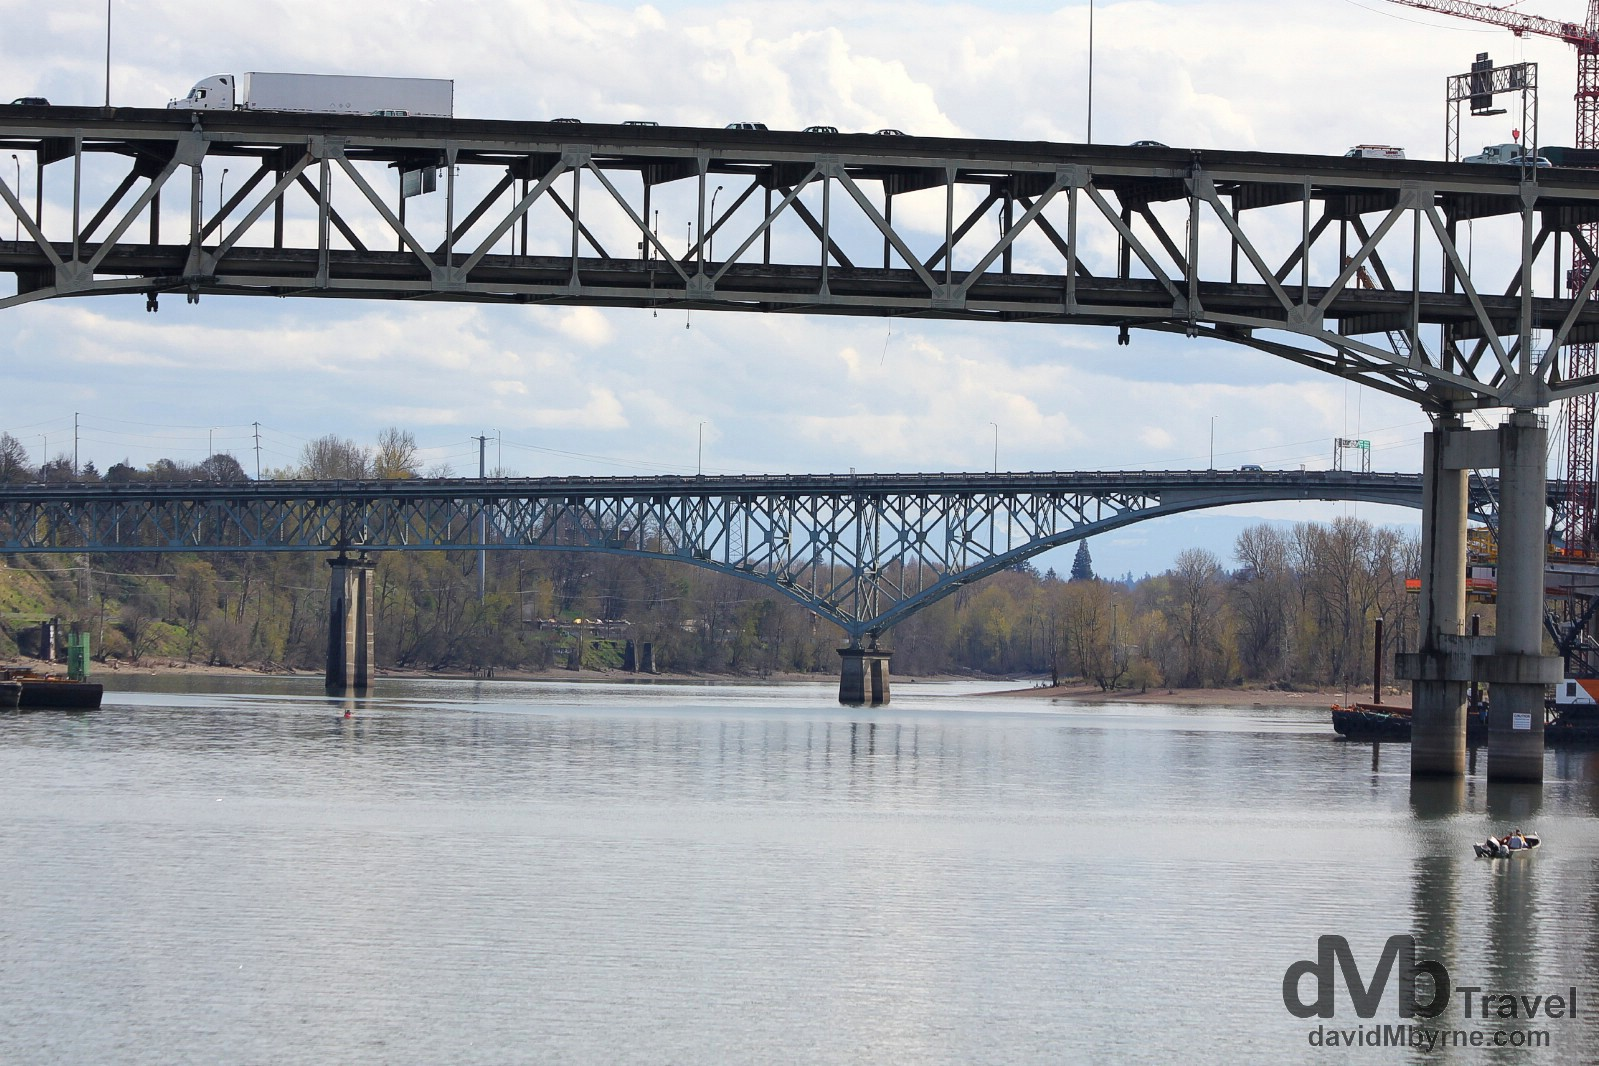 Bridges spanning a section of the Columbia River in Portland, Oregon, USA. March 28, 2013.